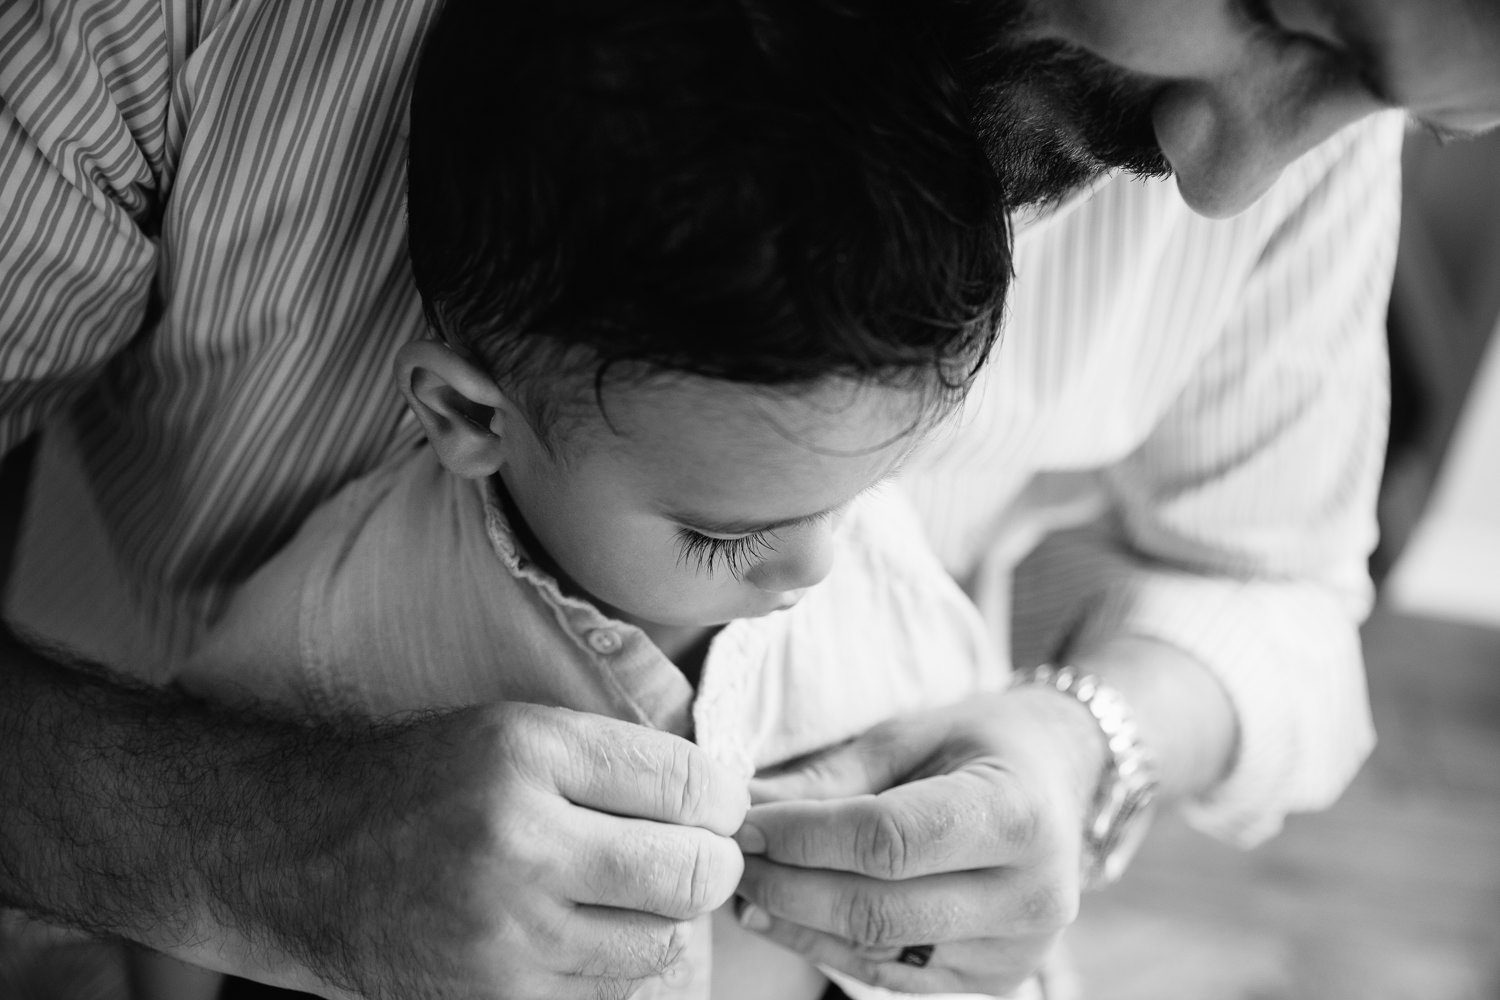 1 year old baby boy with dark hair and long eyelashes sitting in dad's lap as father button's son's shirt - Barrie In-Home Photos